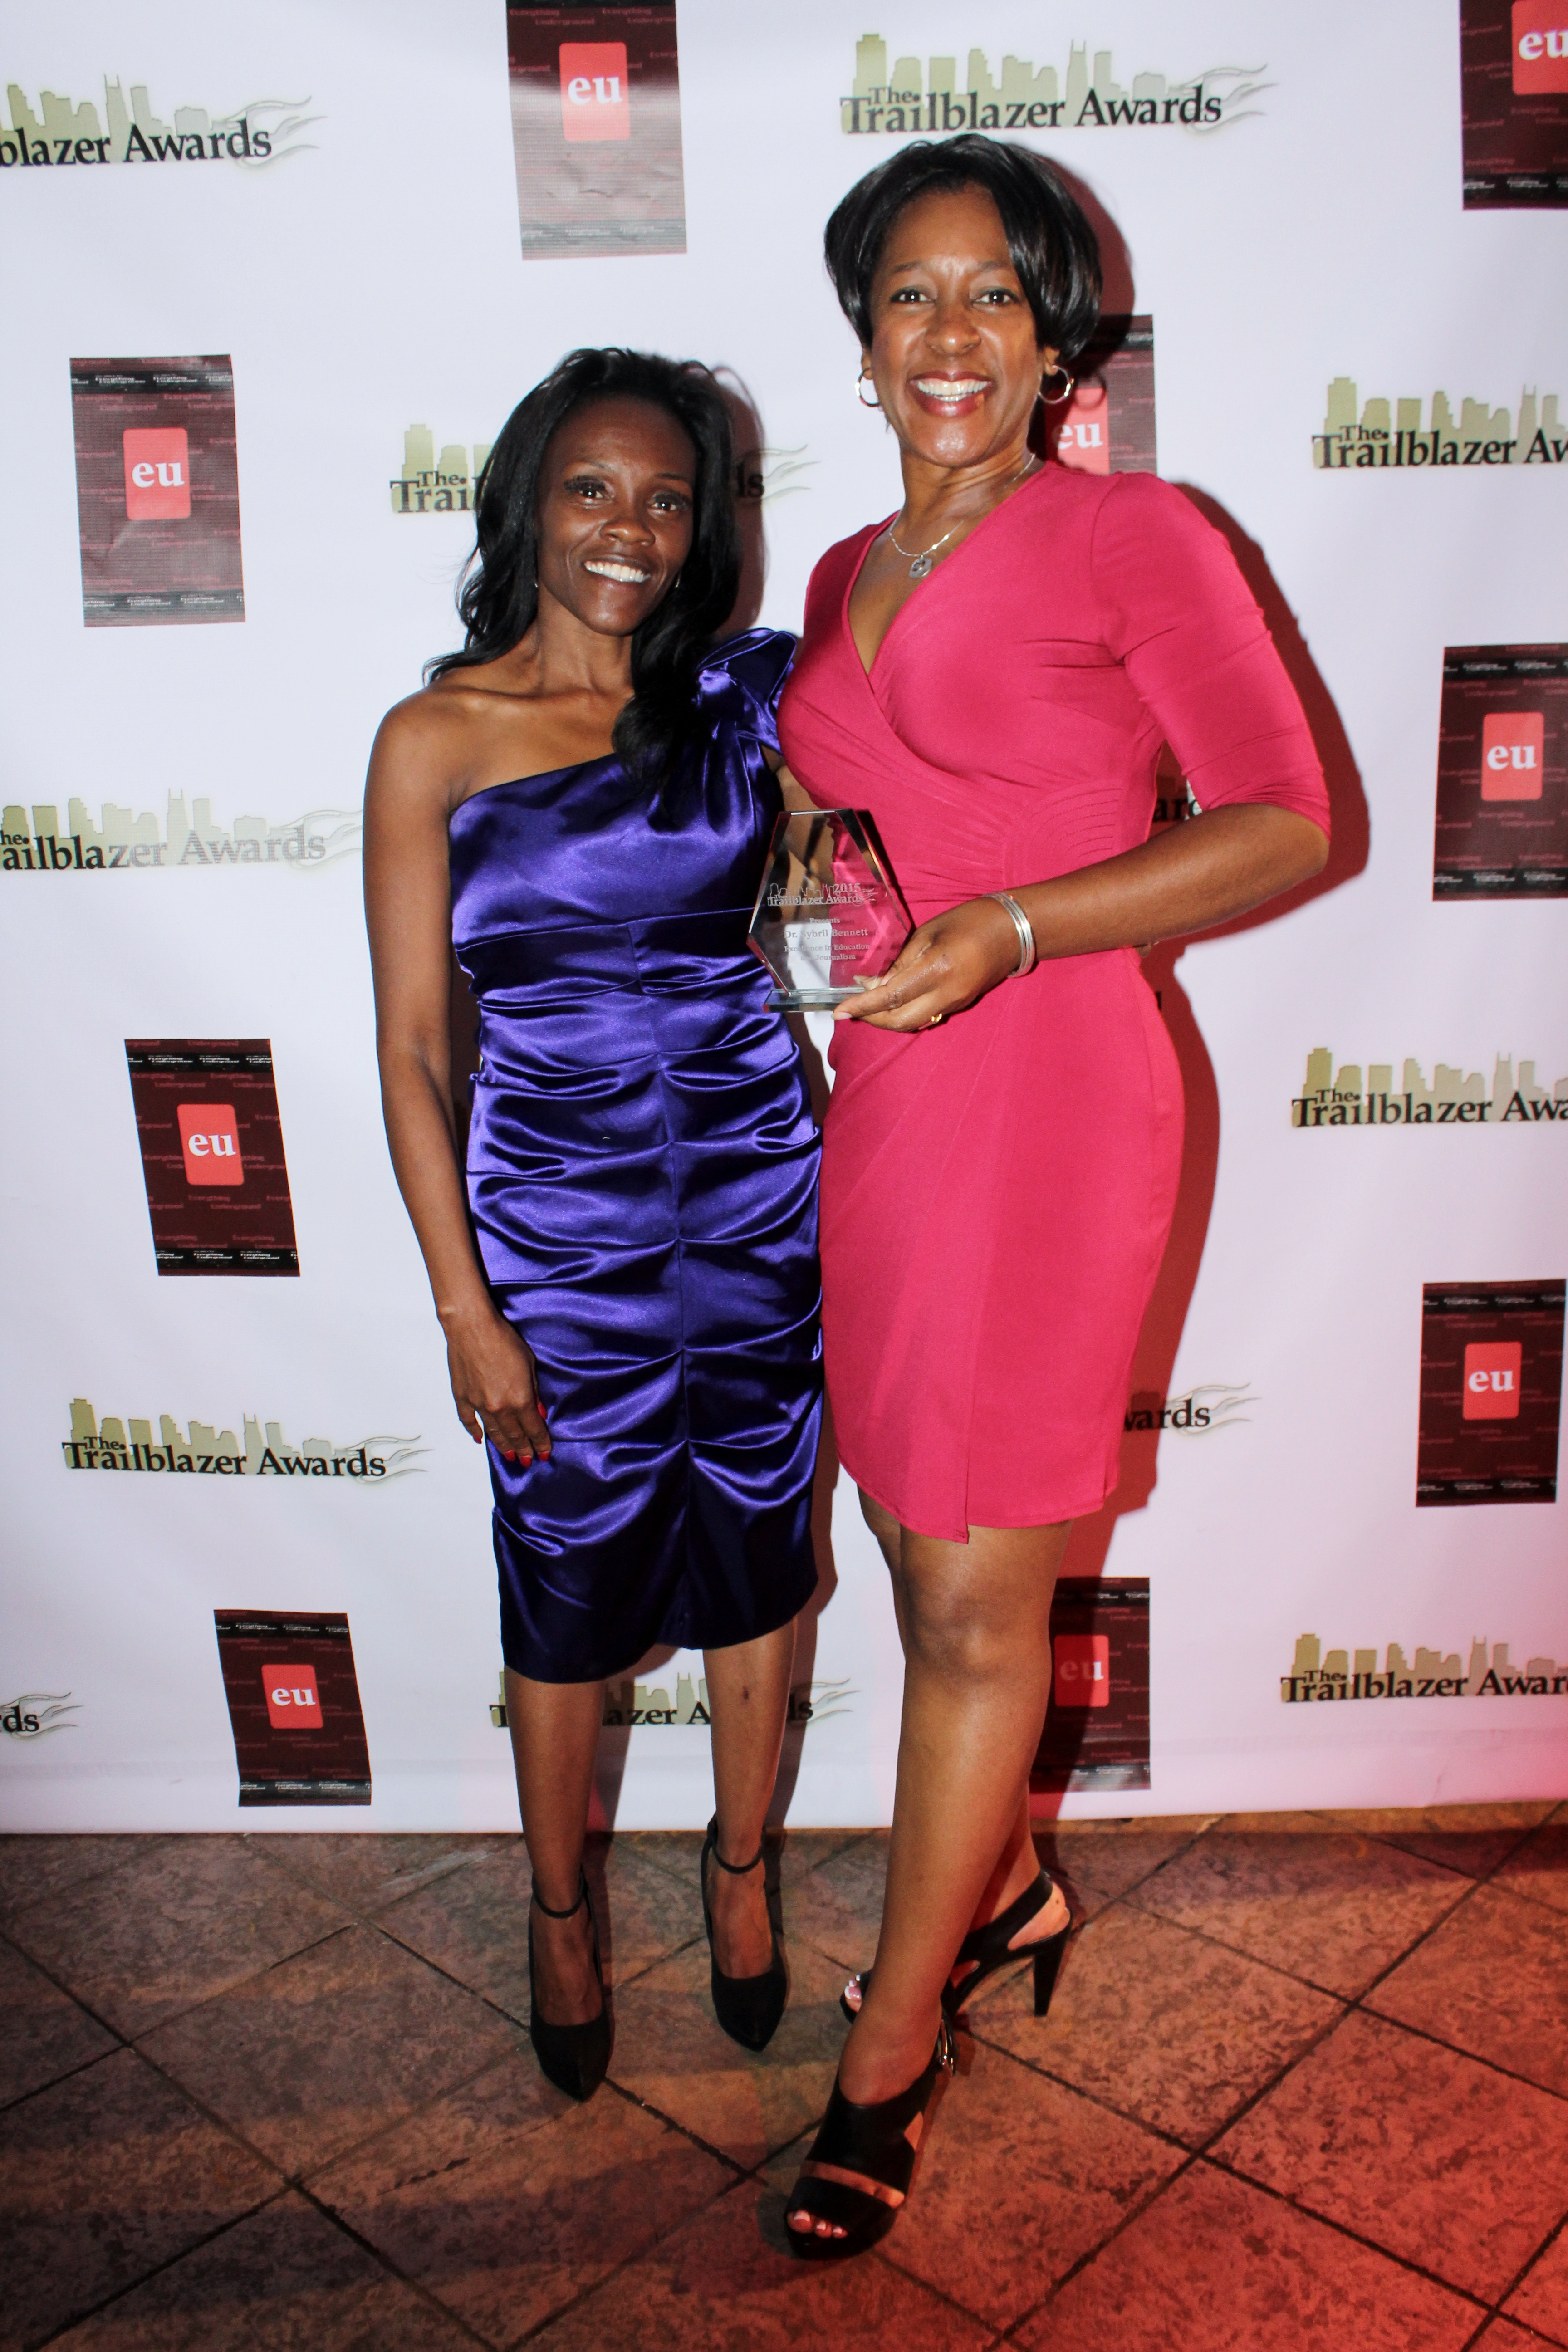 Lashell and Dr. Sybril Bennett